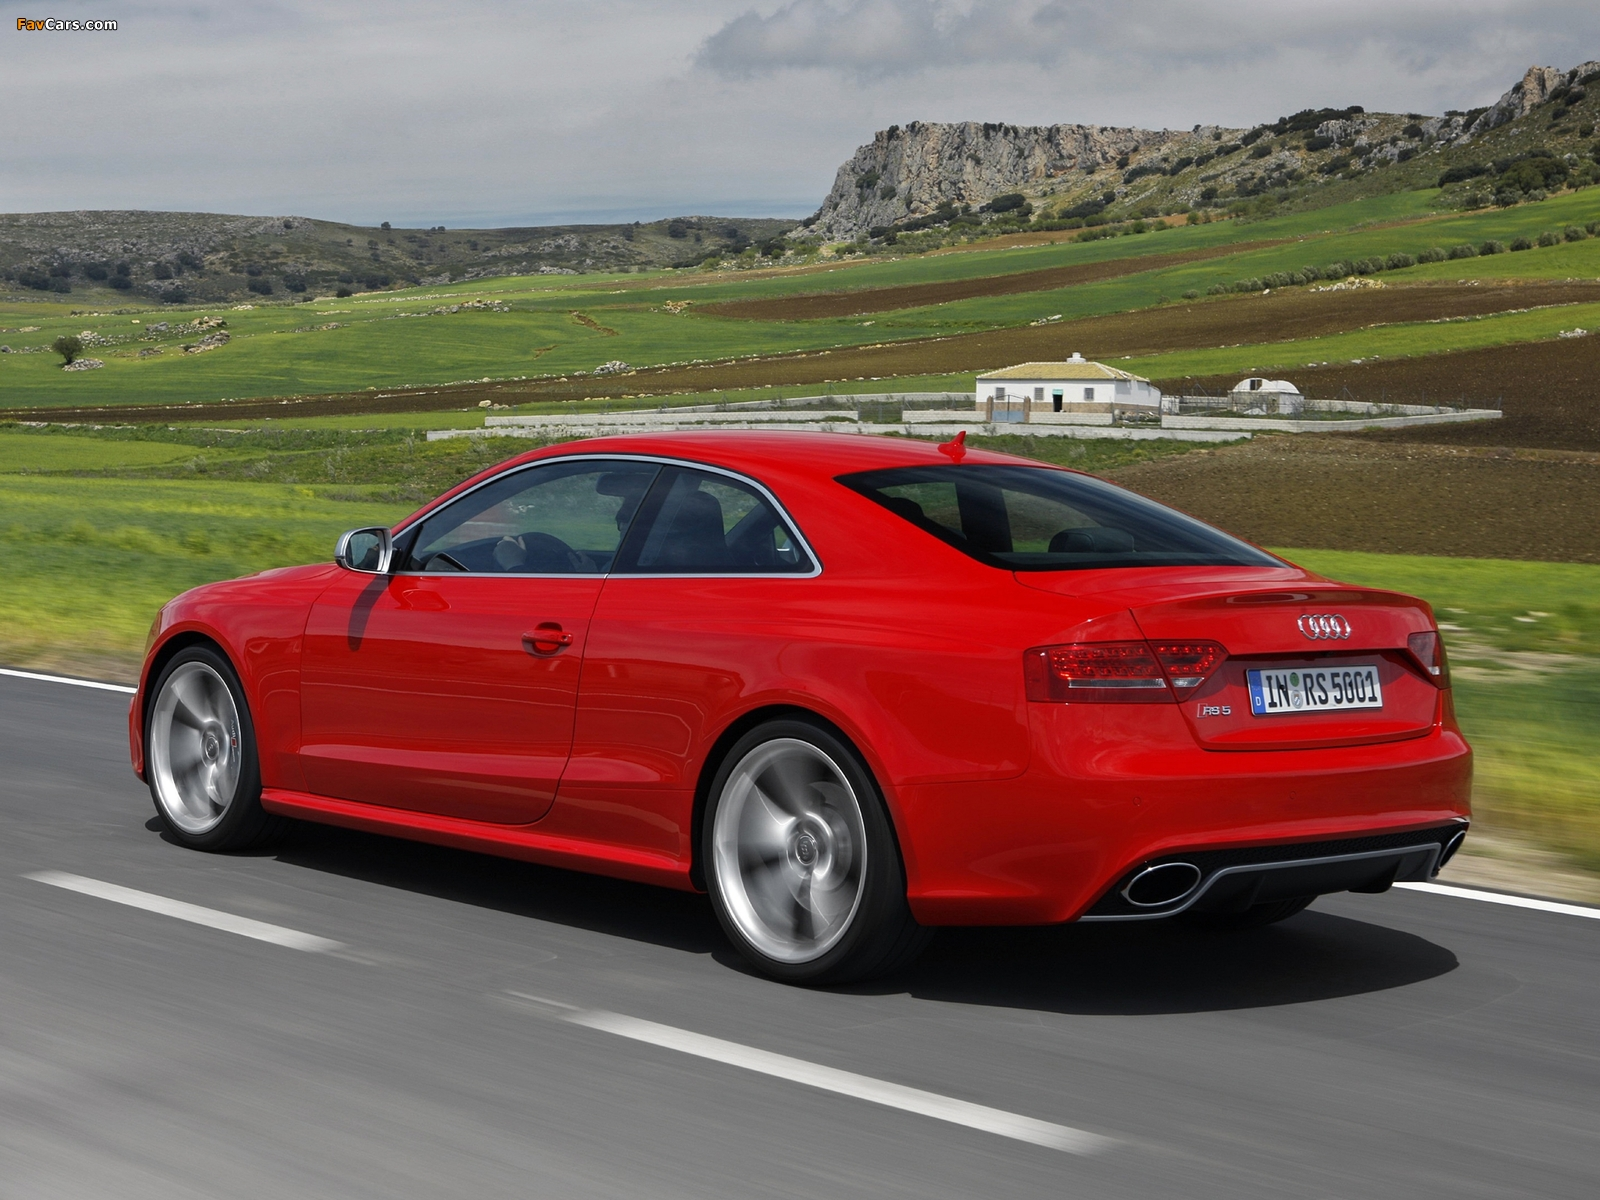 Photos Of Audi Rs5 Coupe 2010 12 1600x1200